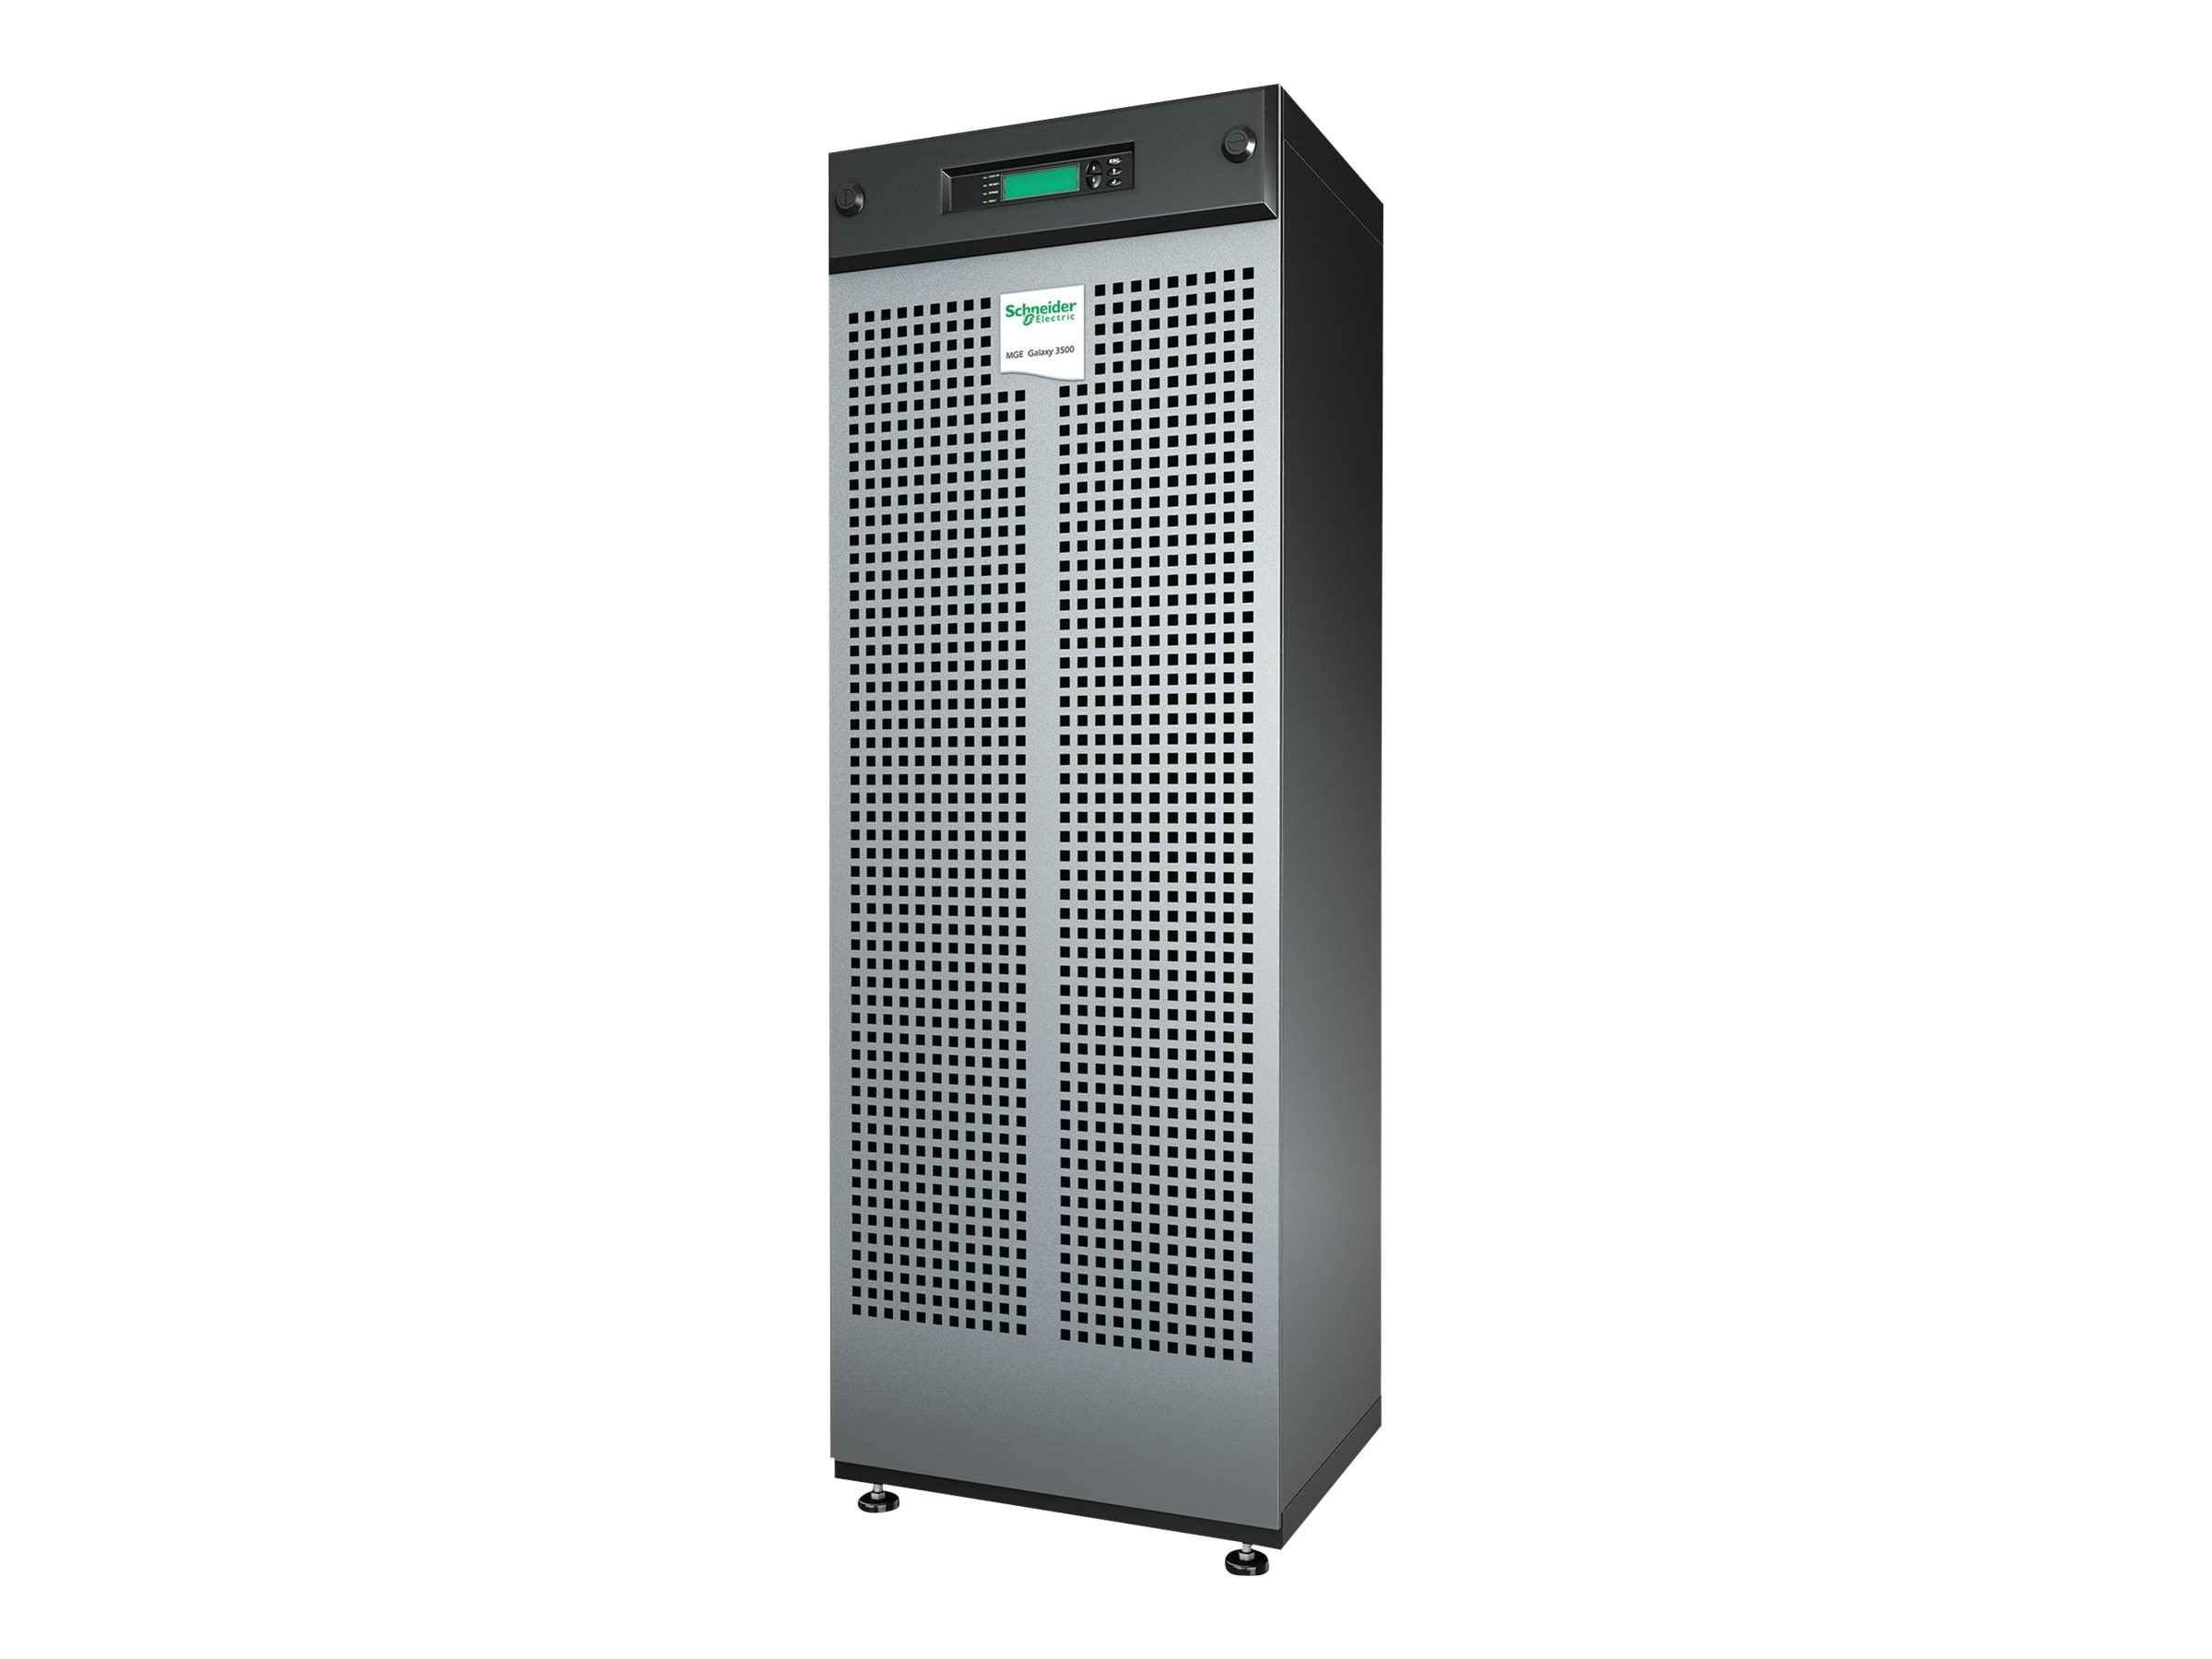 APC Galaxy 3500 20kVA 16kW 208V with (3) Battery Modules Expandable to (4), Start-up 5x8, G35T20KF3B4S